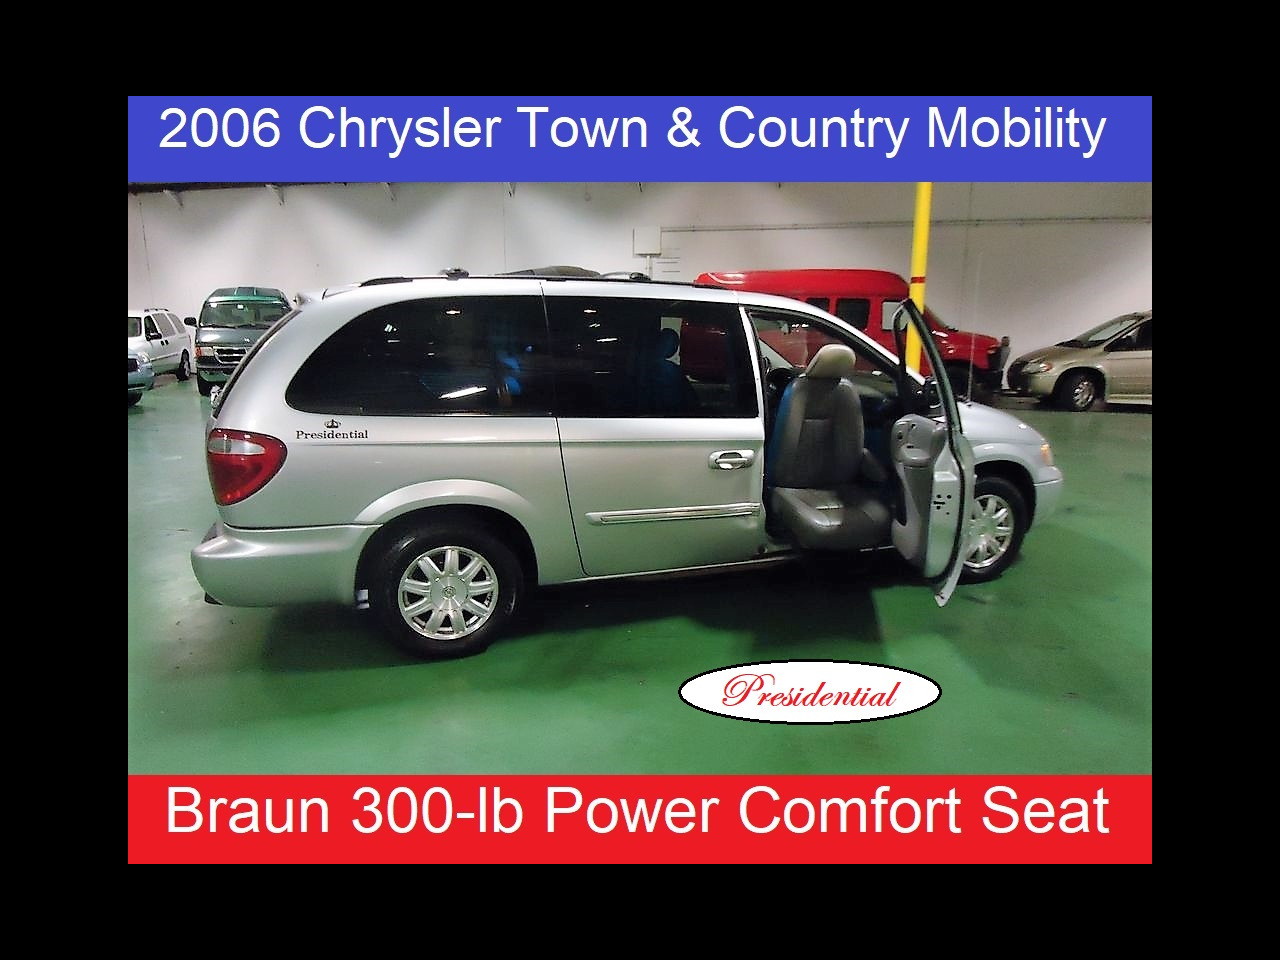 2006 Chrysler Town & Country LWB Presidential Handicap Mobility with Braum Comfort